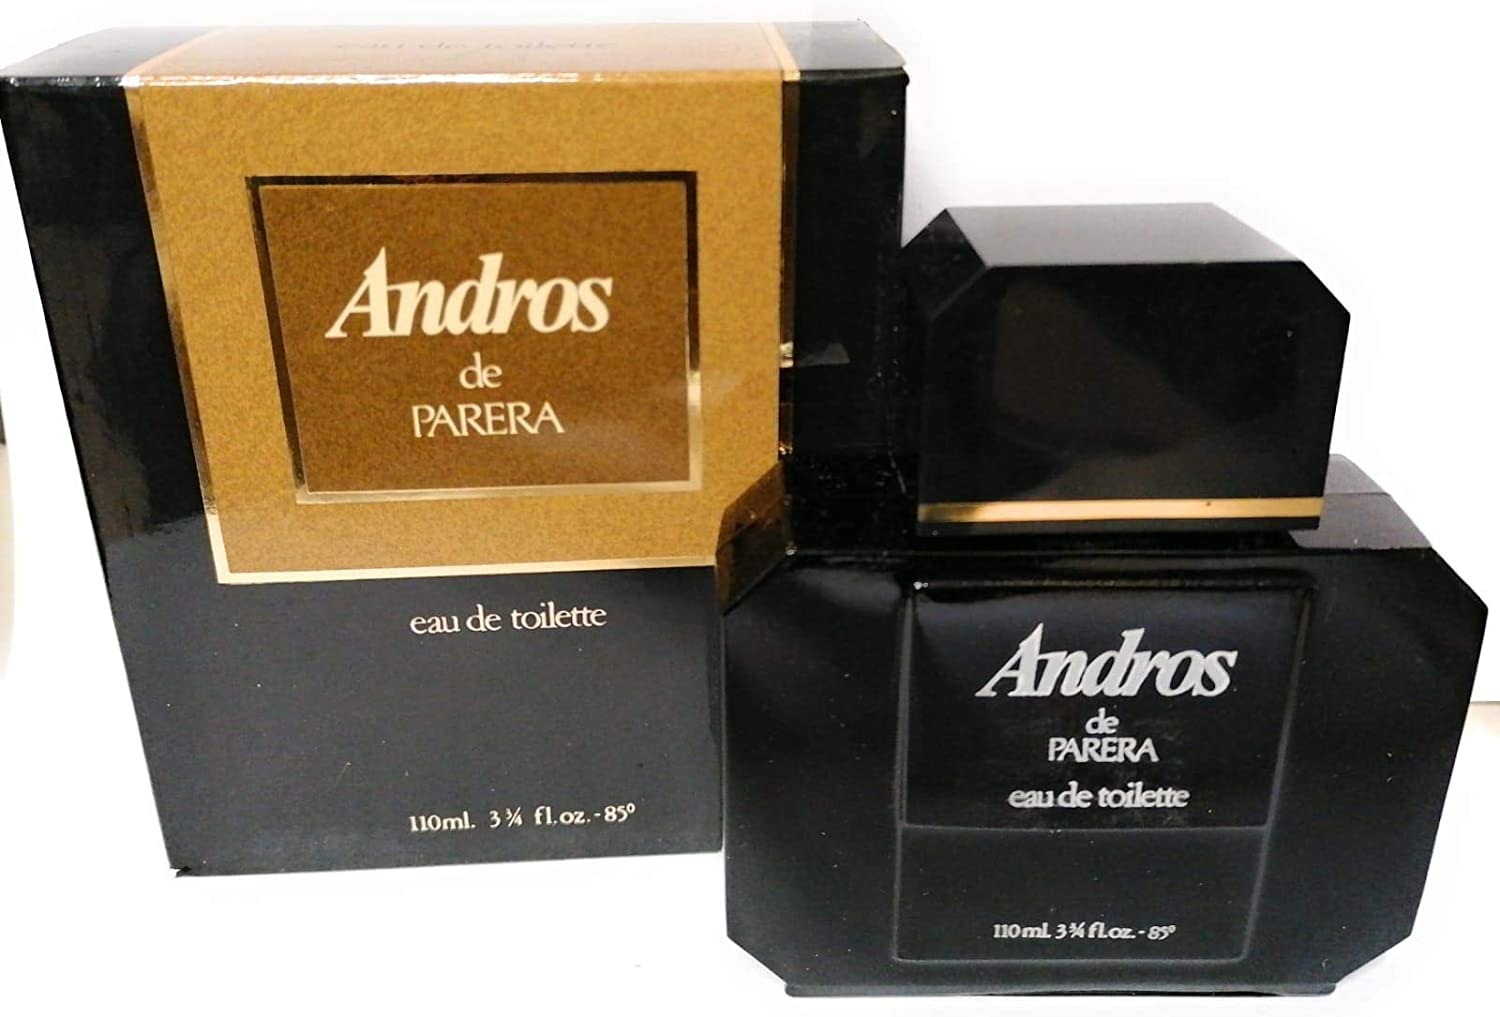 Andros de Parera - Eau de Toilette 110ml Edt Splash VINTAGE